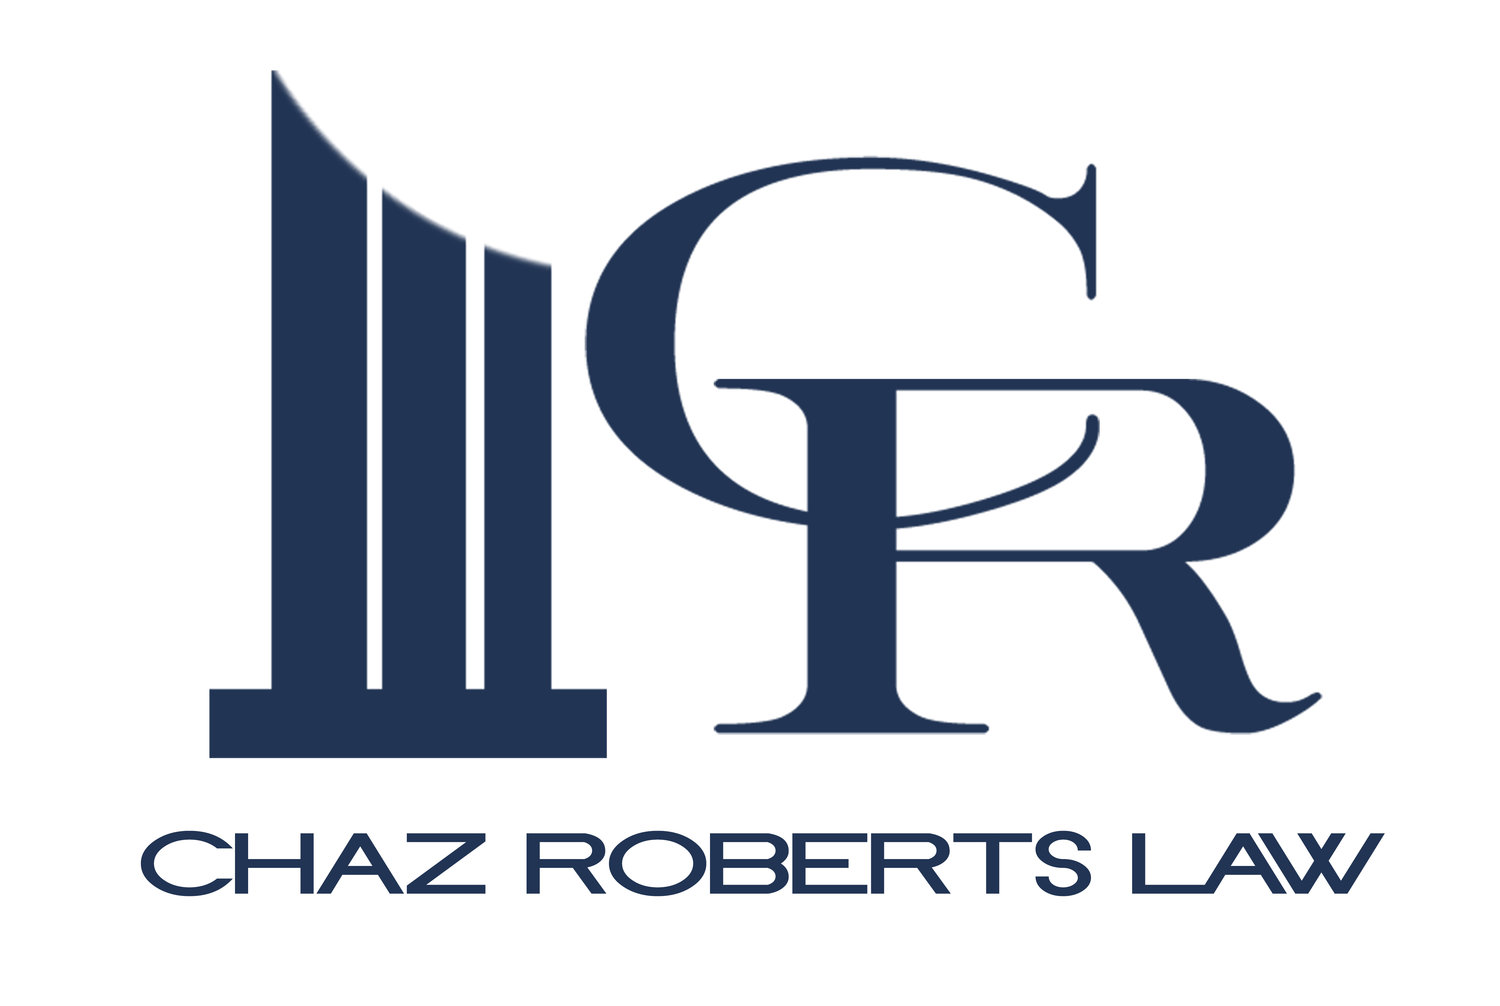 Chaz Roberts Law